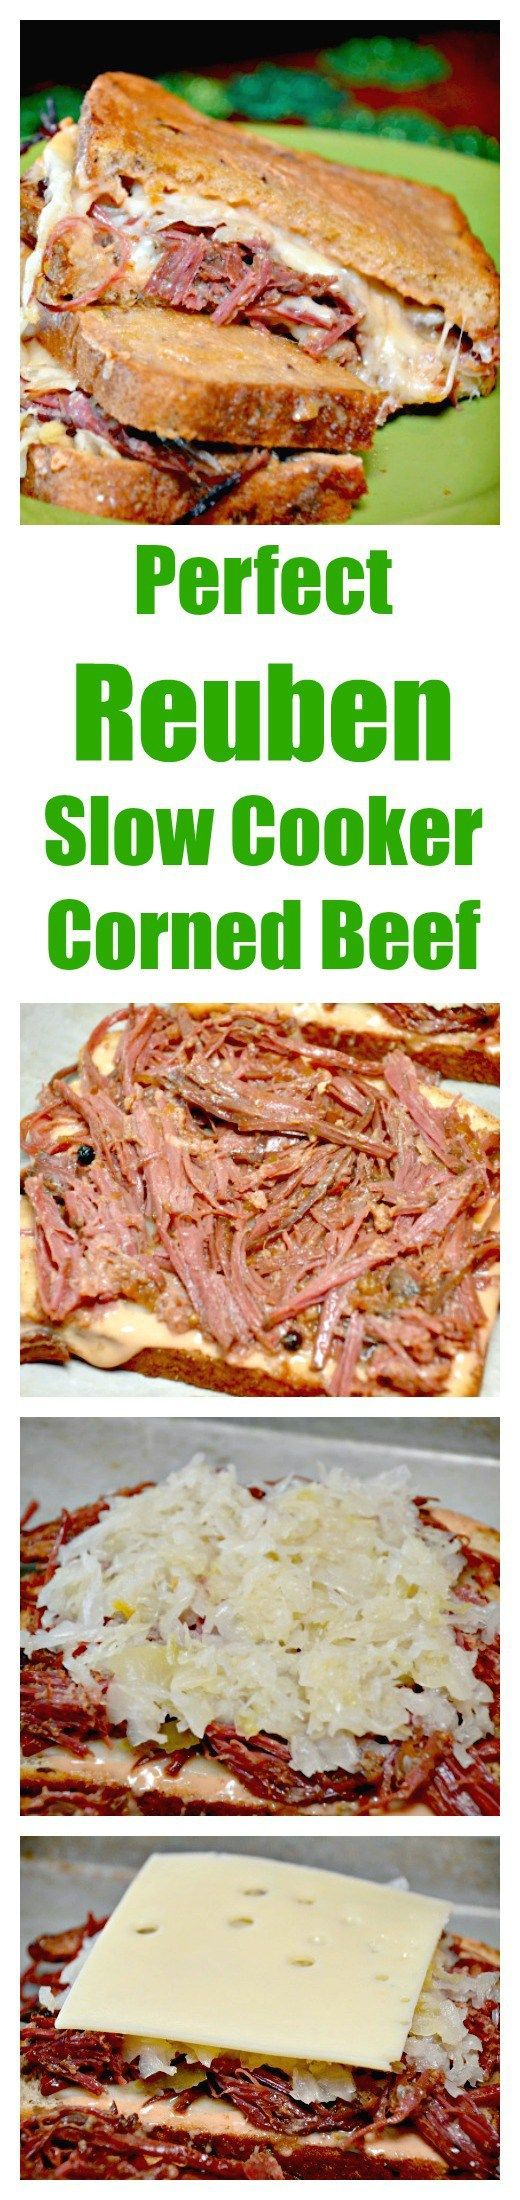 Slow Cooker Corned Beef Hash & Reuben Sandwiches #slow cooker #St. Patricks Day #Corned Beef #Reuben Sandwiches